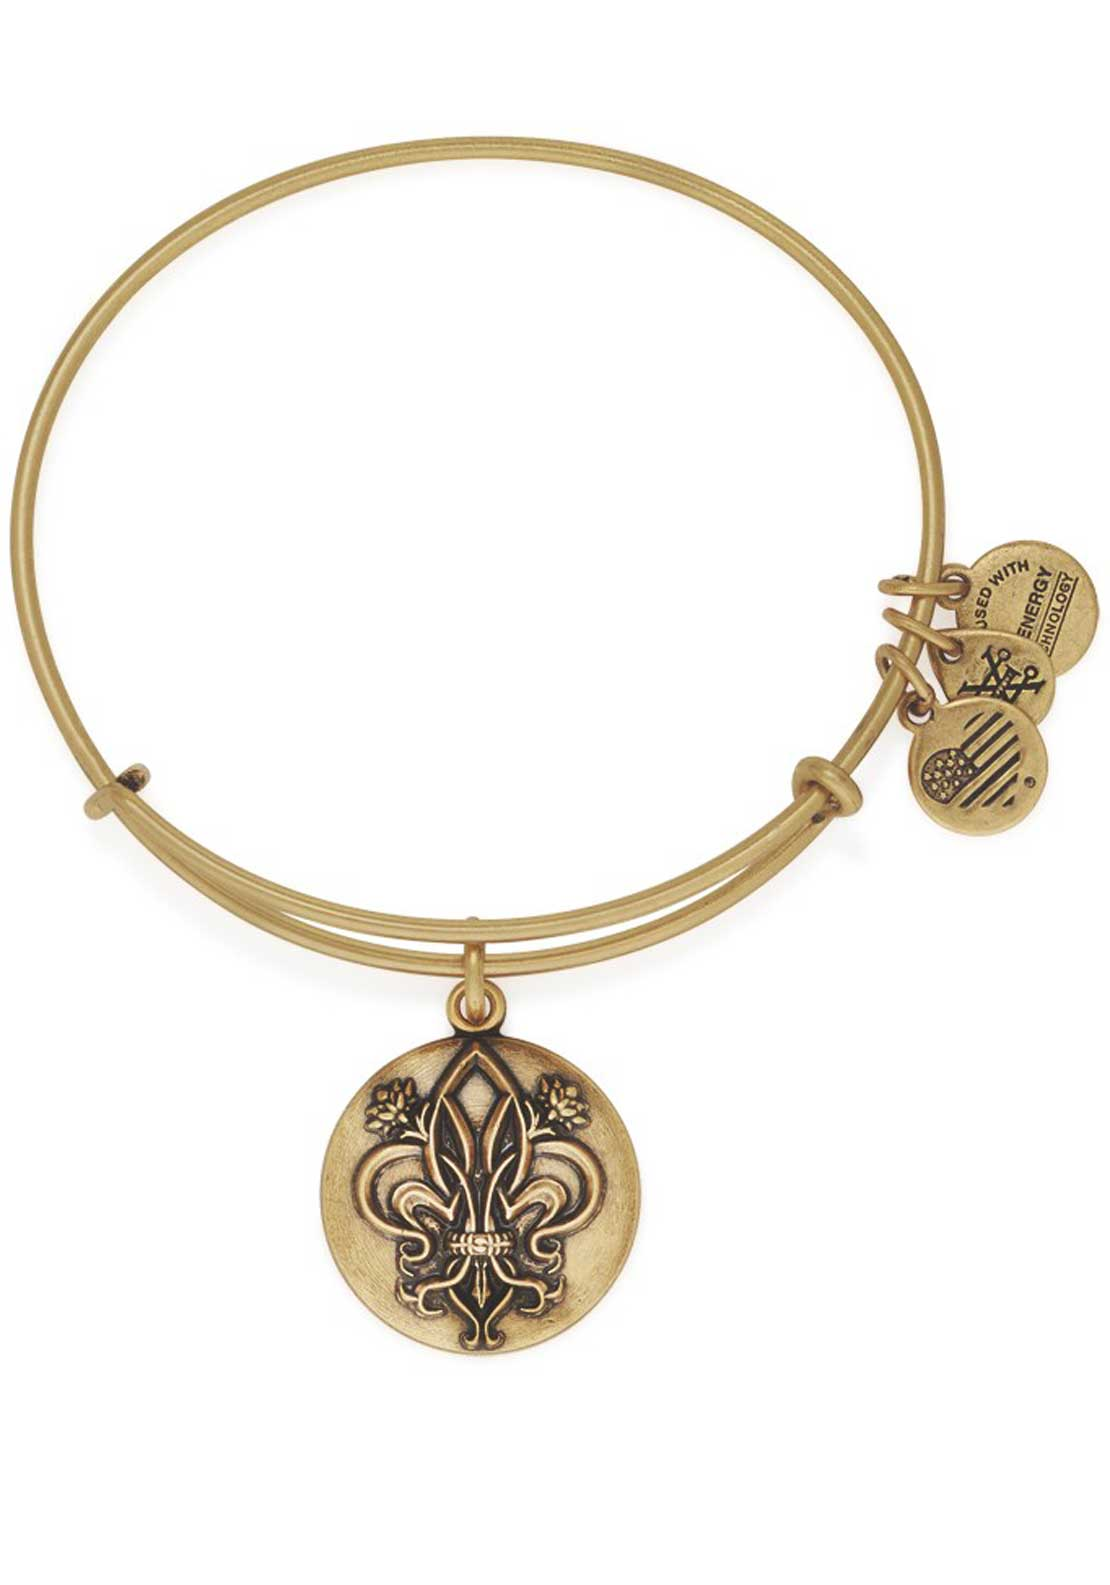 Alex and Ani Fleur De Lis Bracelet, Gold